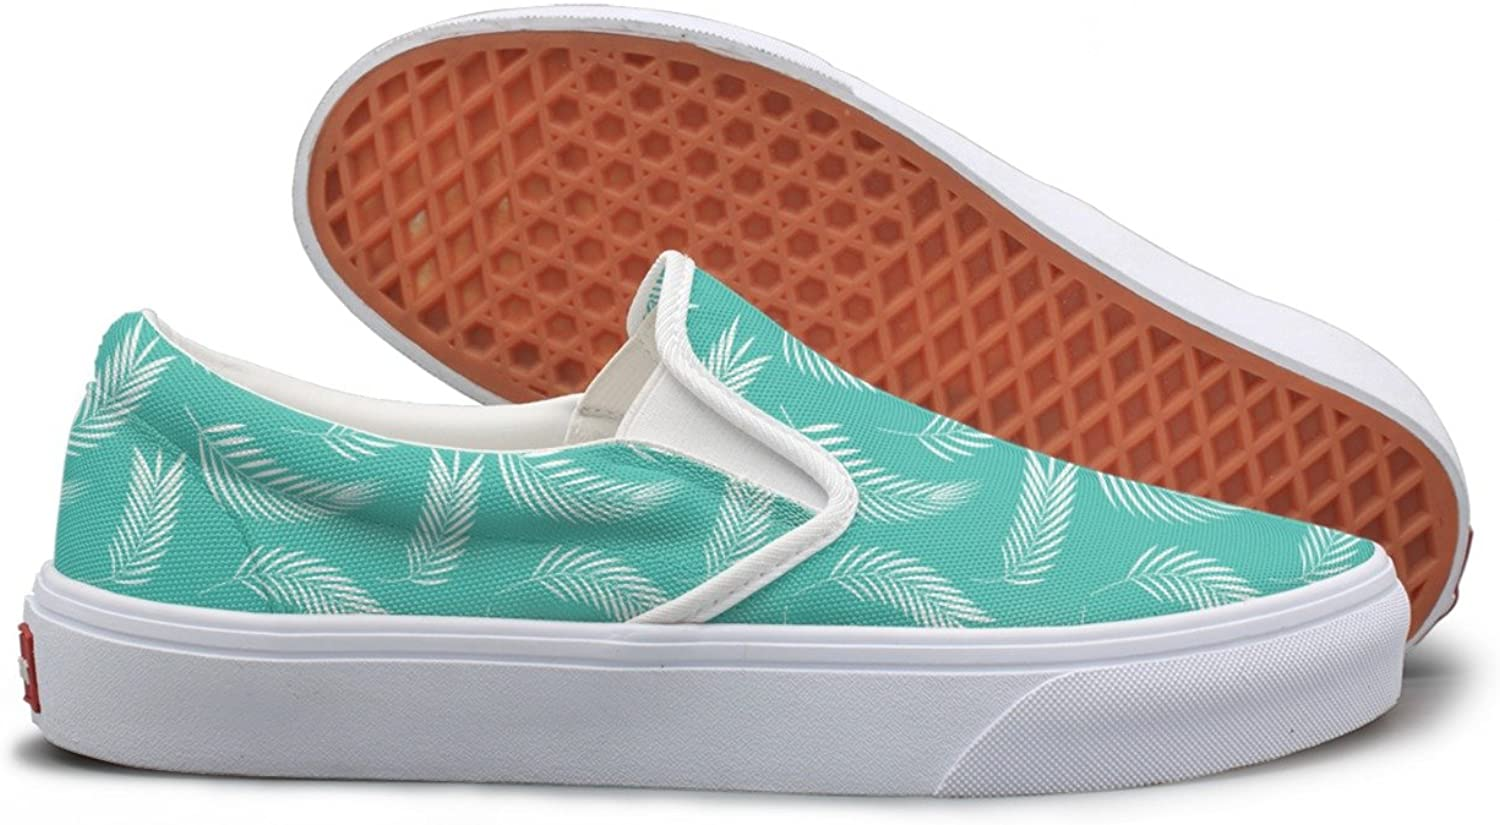 Coconut Tea Tree Oil School Sneakers For Girls